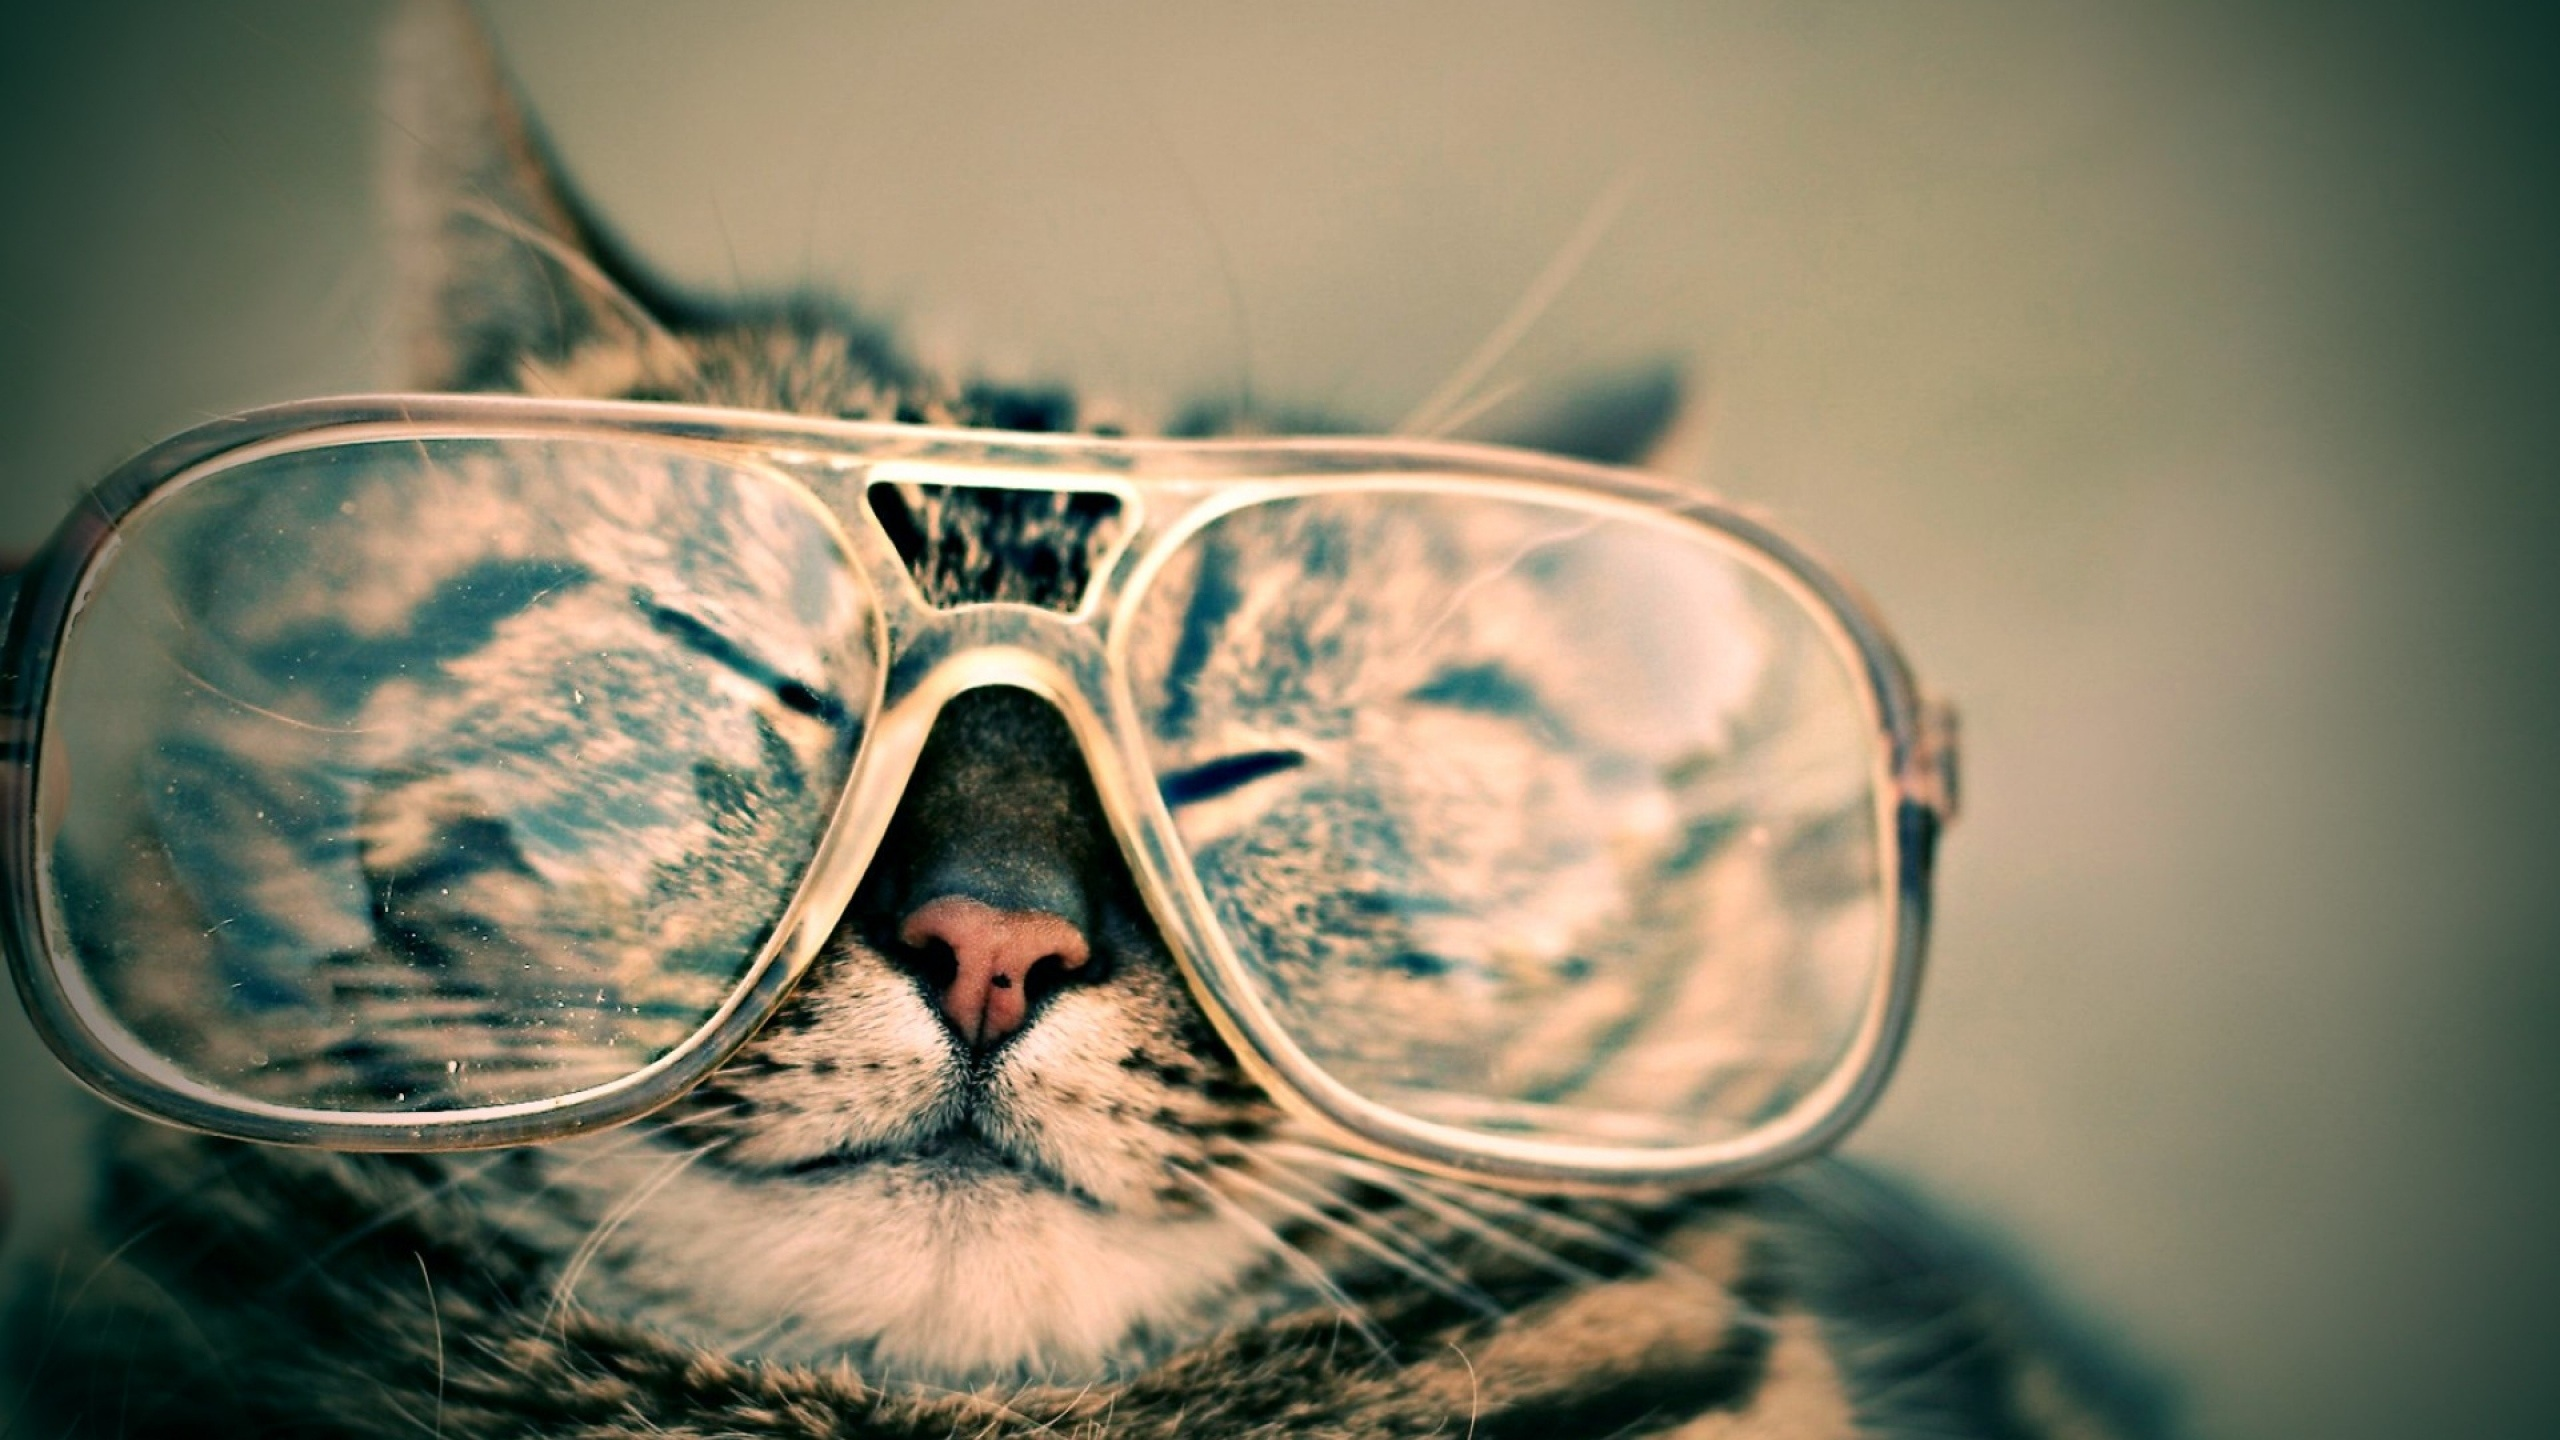 A photo of a cat wearing glasses by Octavio Fossatti on Unsplash